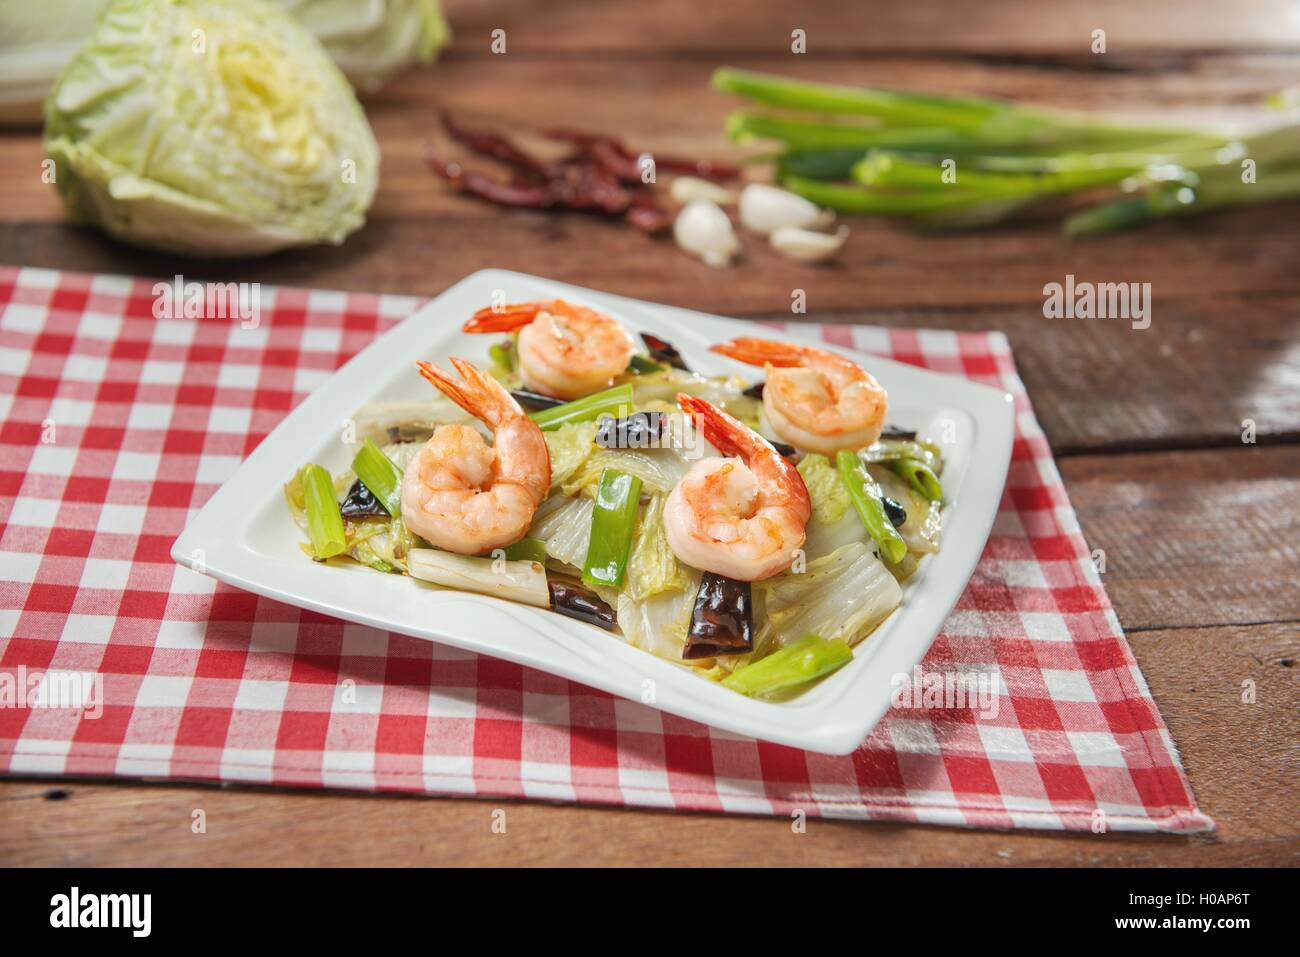 Plate of fried shrimp with vegetables on the table in restaurant - Stock Image